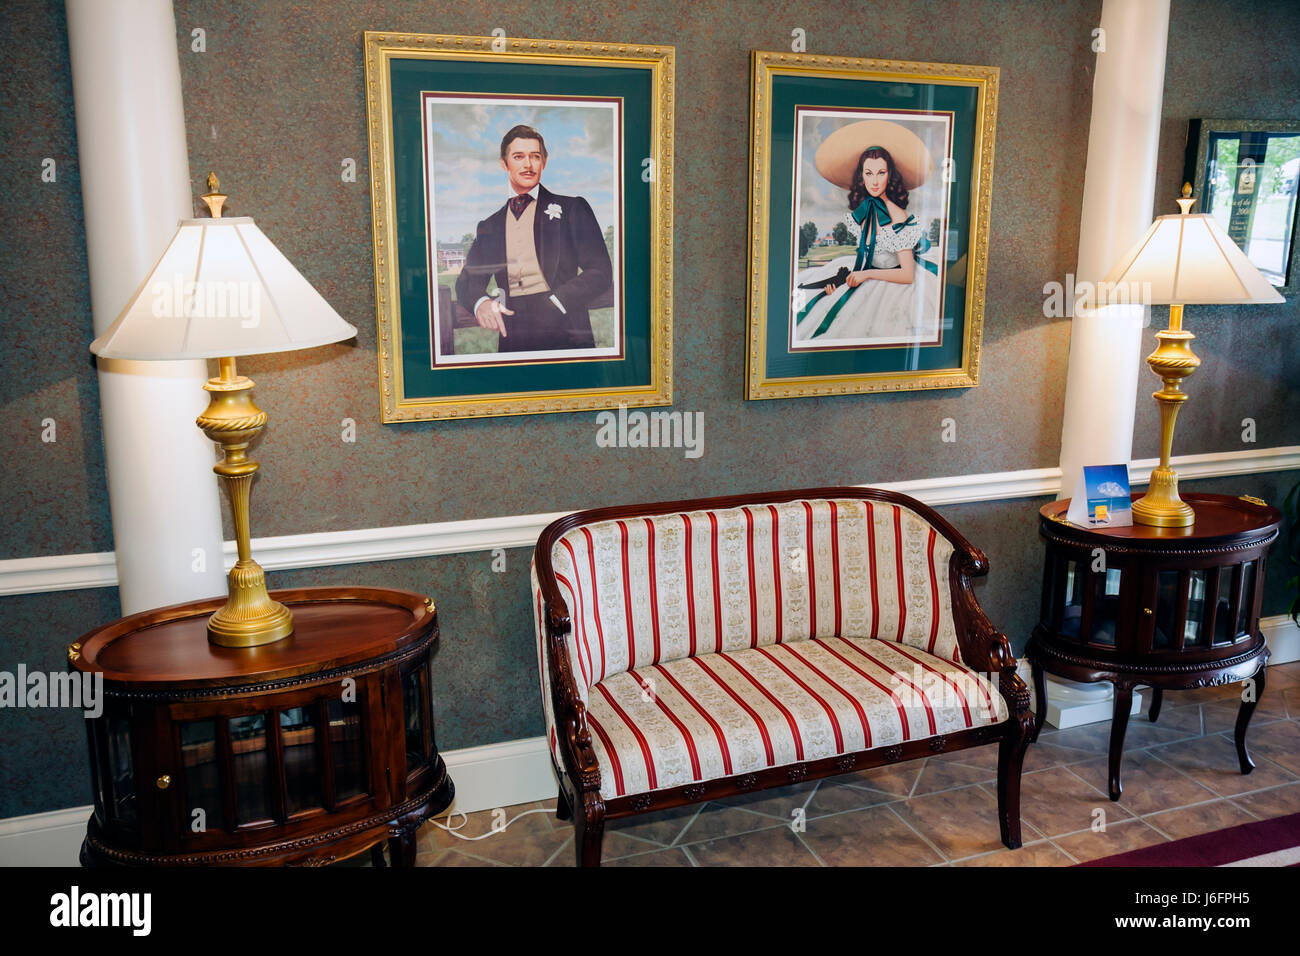 Tennessee Sevierville Clarion Inn Willow River Hotel Lobby Sofa Framed  Picture Scarlett Ou0027Hara Vivien Leigh Gone With The Wind